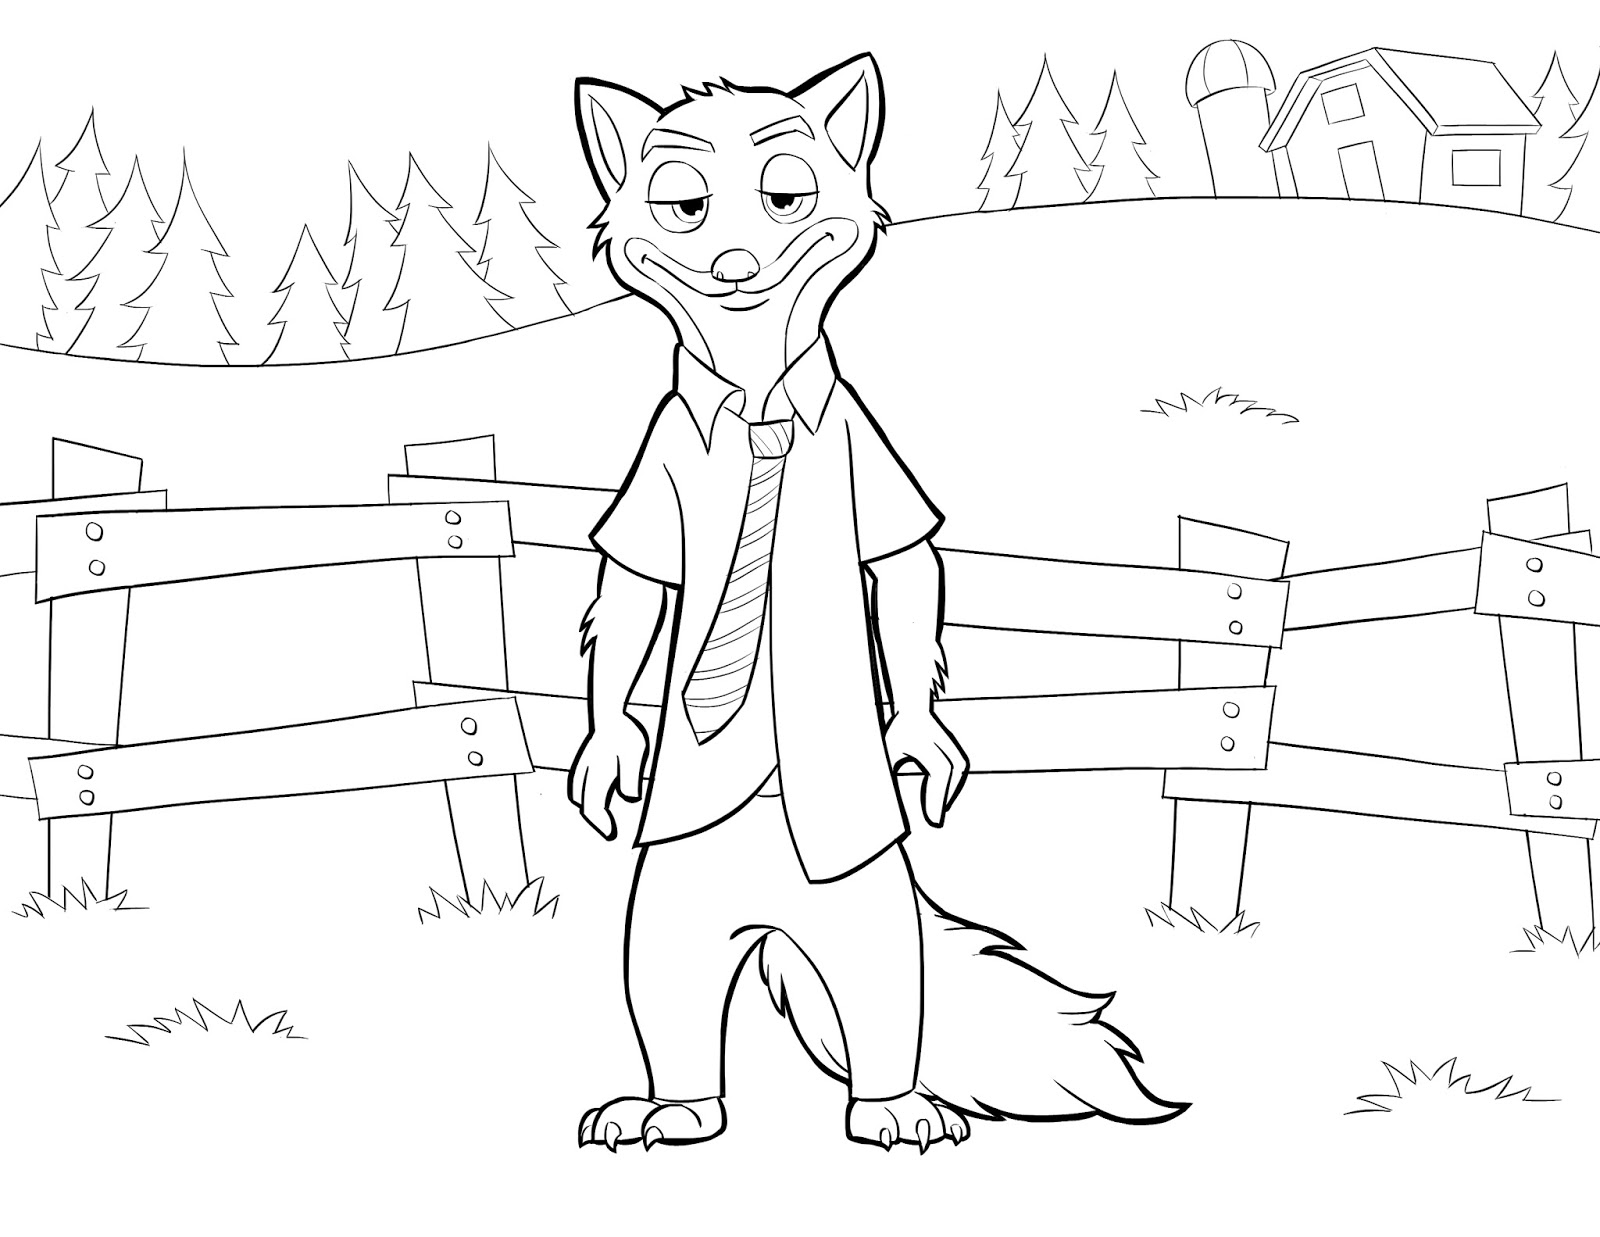 Zootopia coloring sheets - Download And Print Printables Coloring Pages From The Cartoon Zootopia